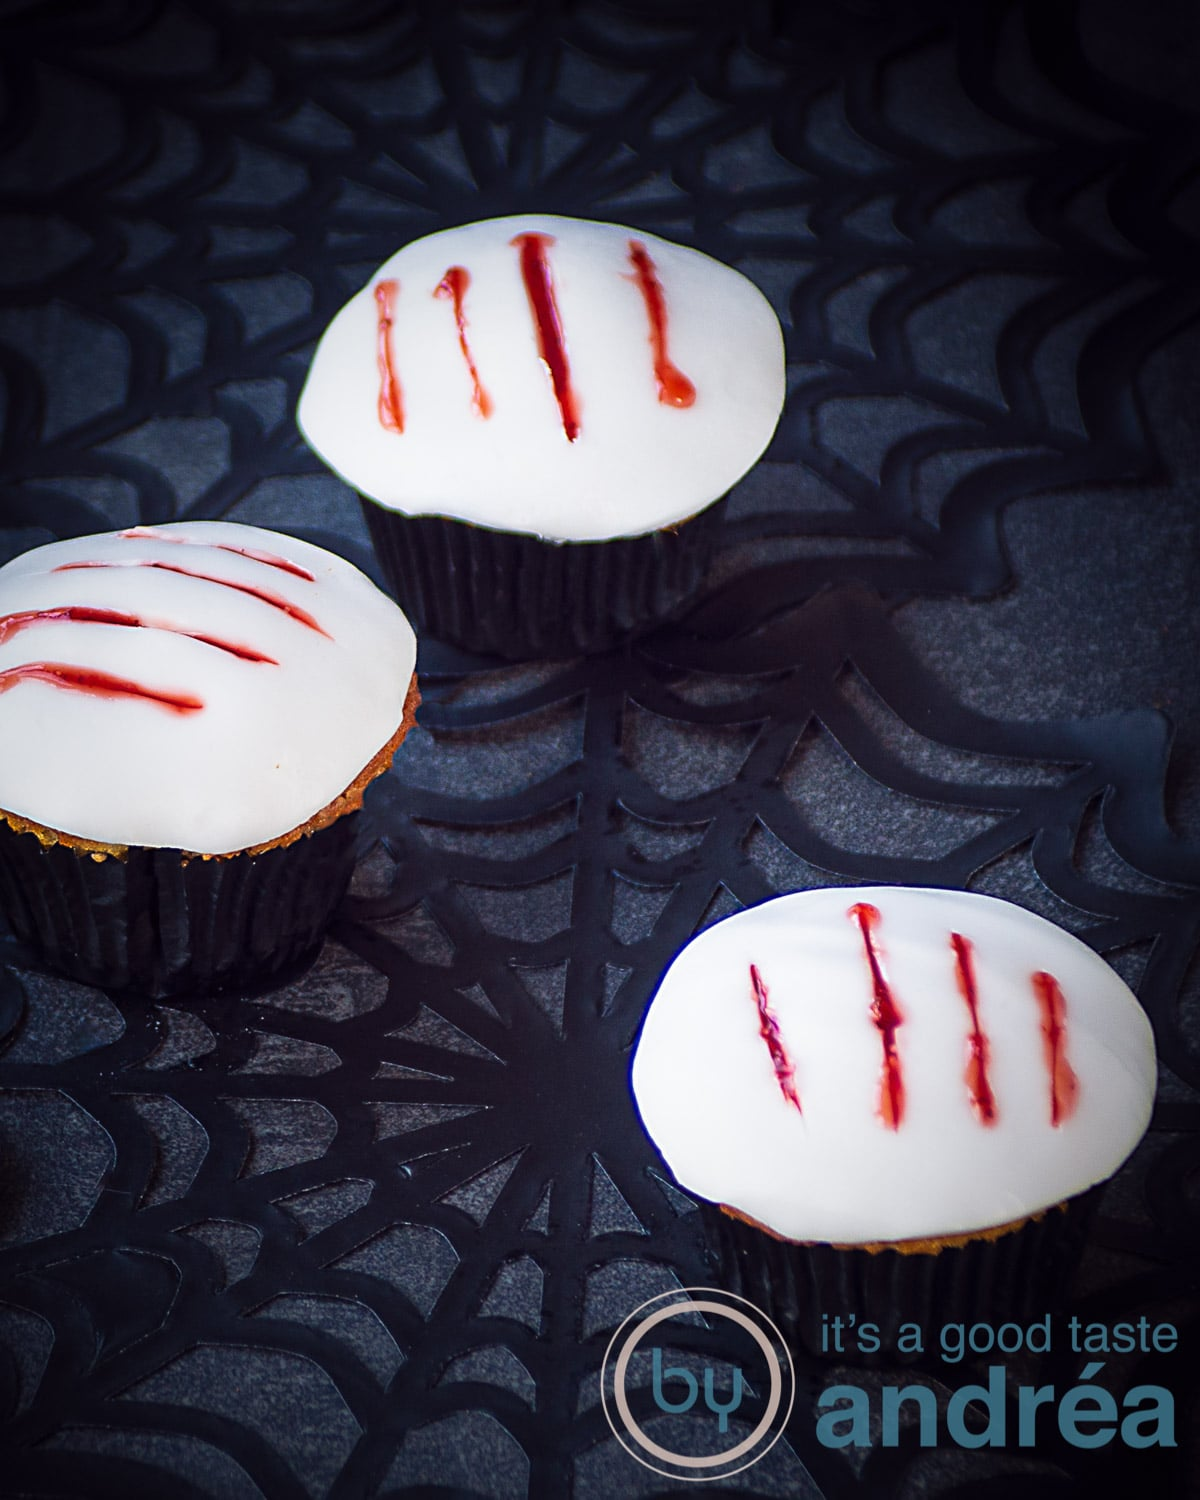 Three cupcakes with a white topping and some claw marks filled with strawberry blood. They're placed on cob webs